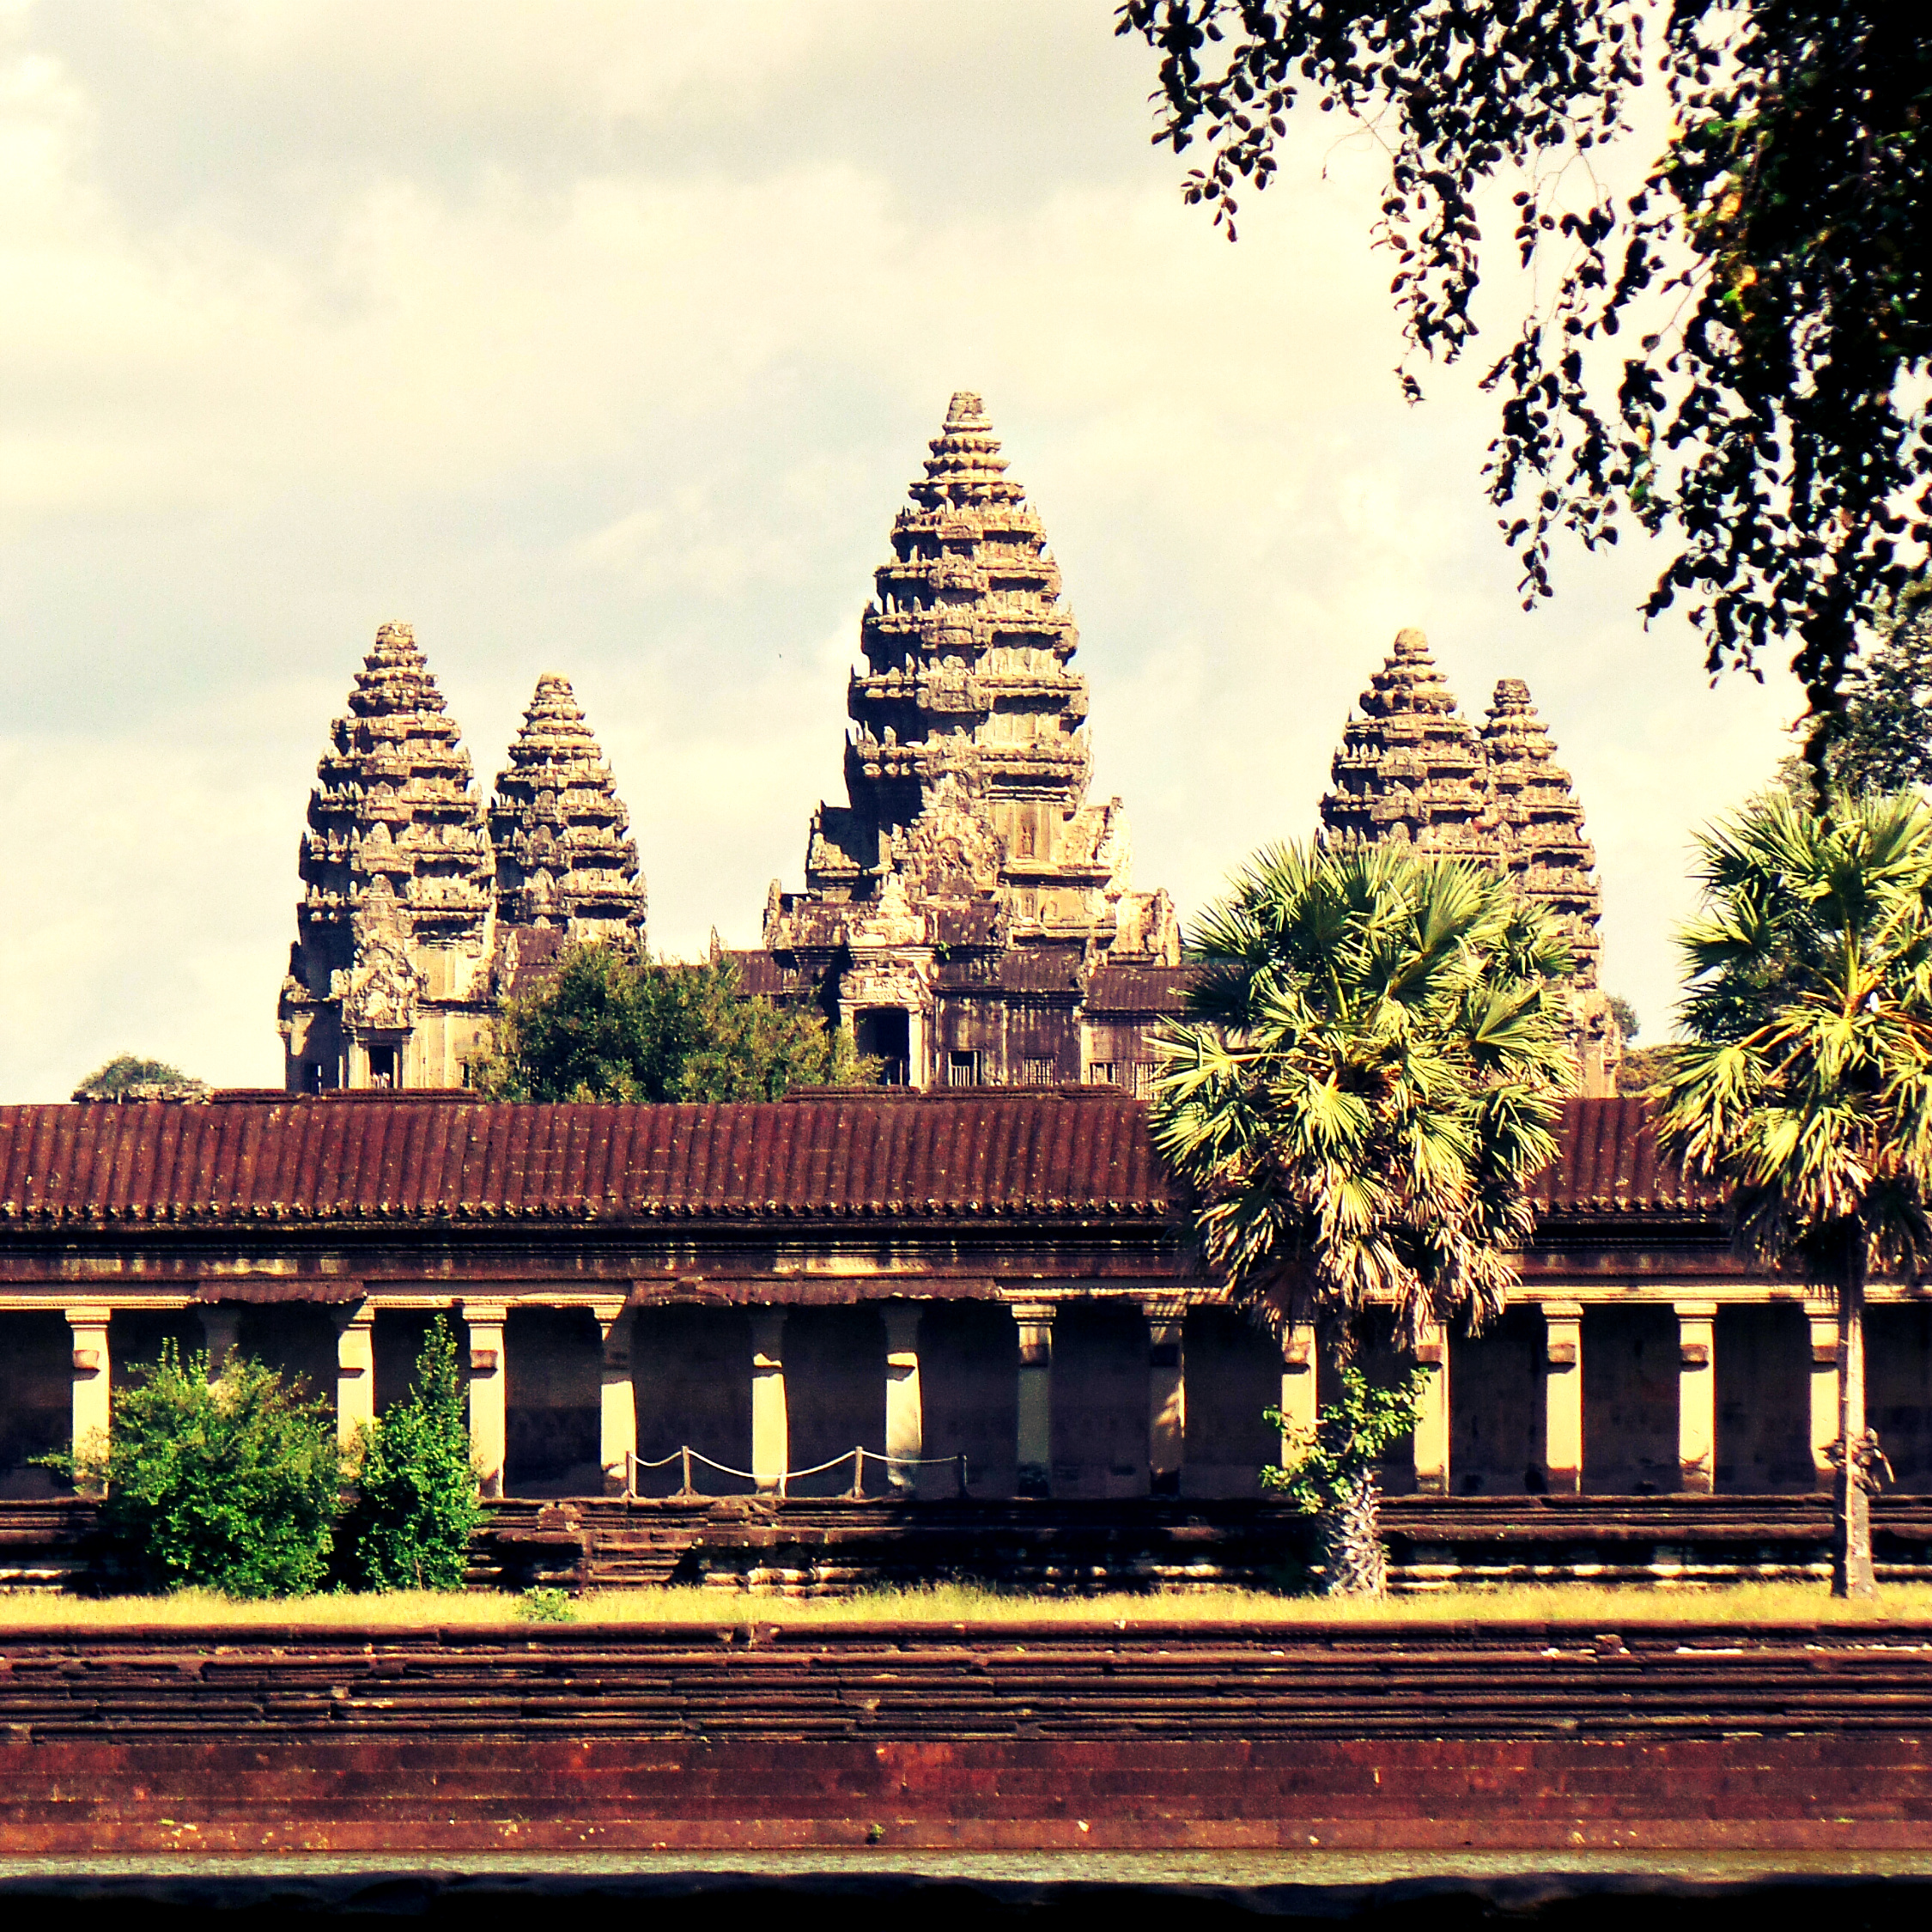 Cambodia: Siem Reap Cambodia: Home To The Magnificent Angkor Wat